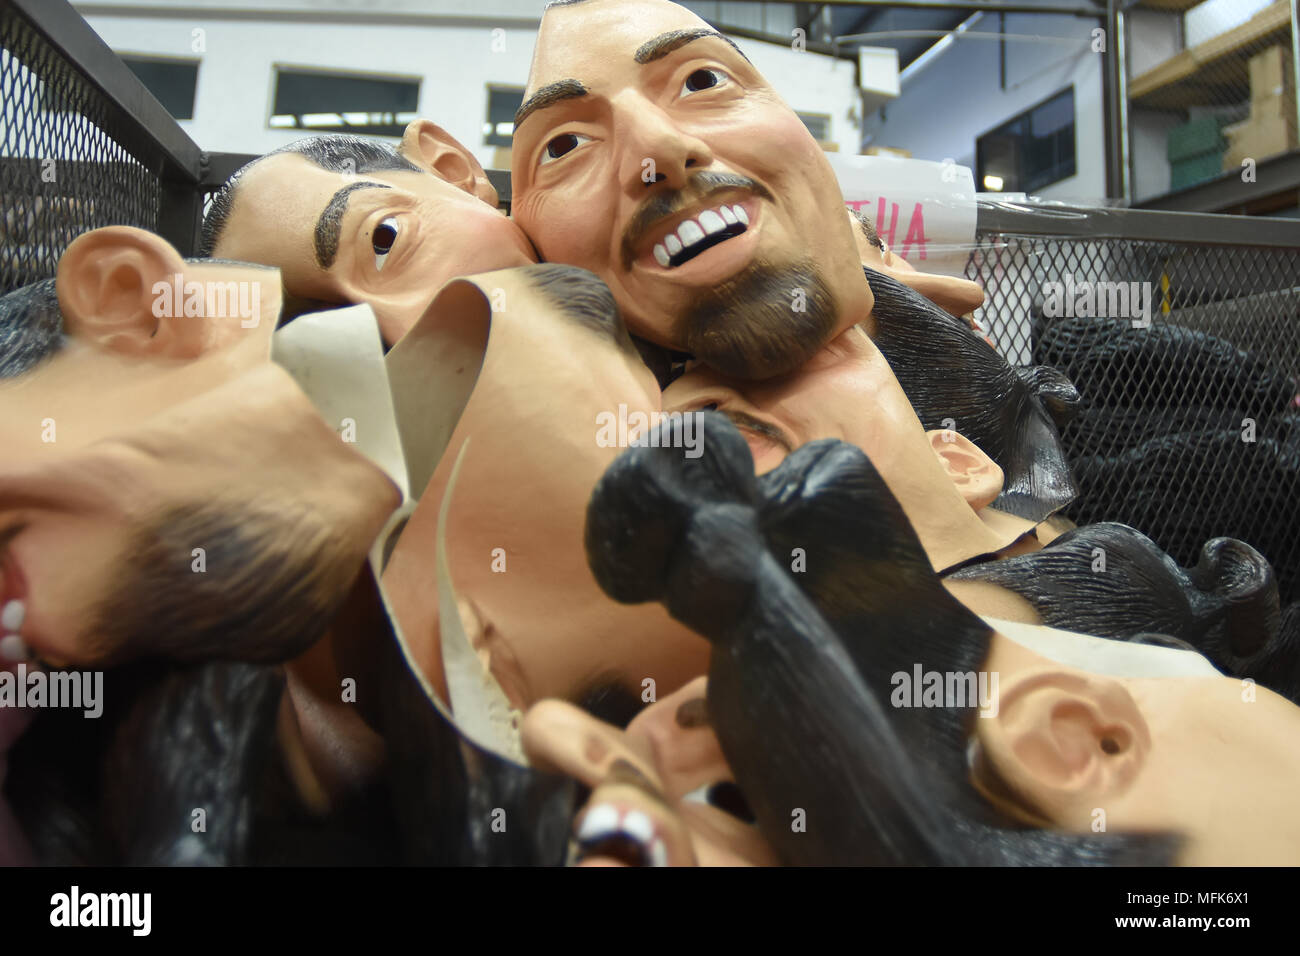 Zlatan's latex mask seen in a Mexico's factory after hearing the news that  soccer star Zlatan